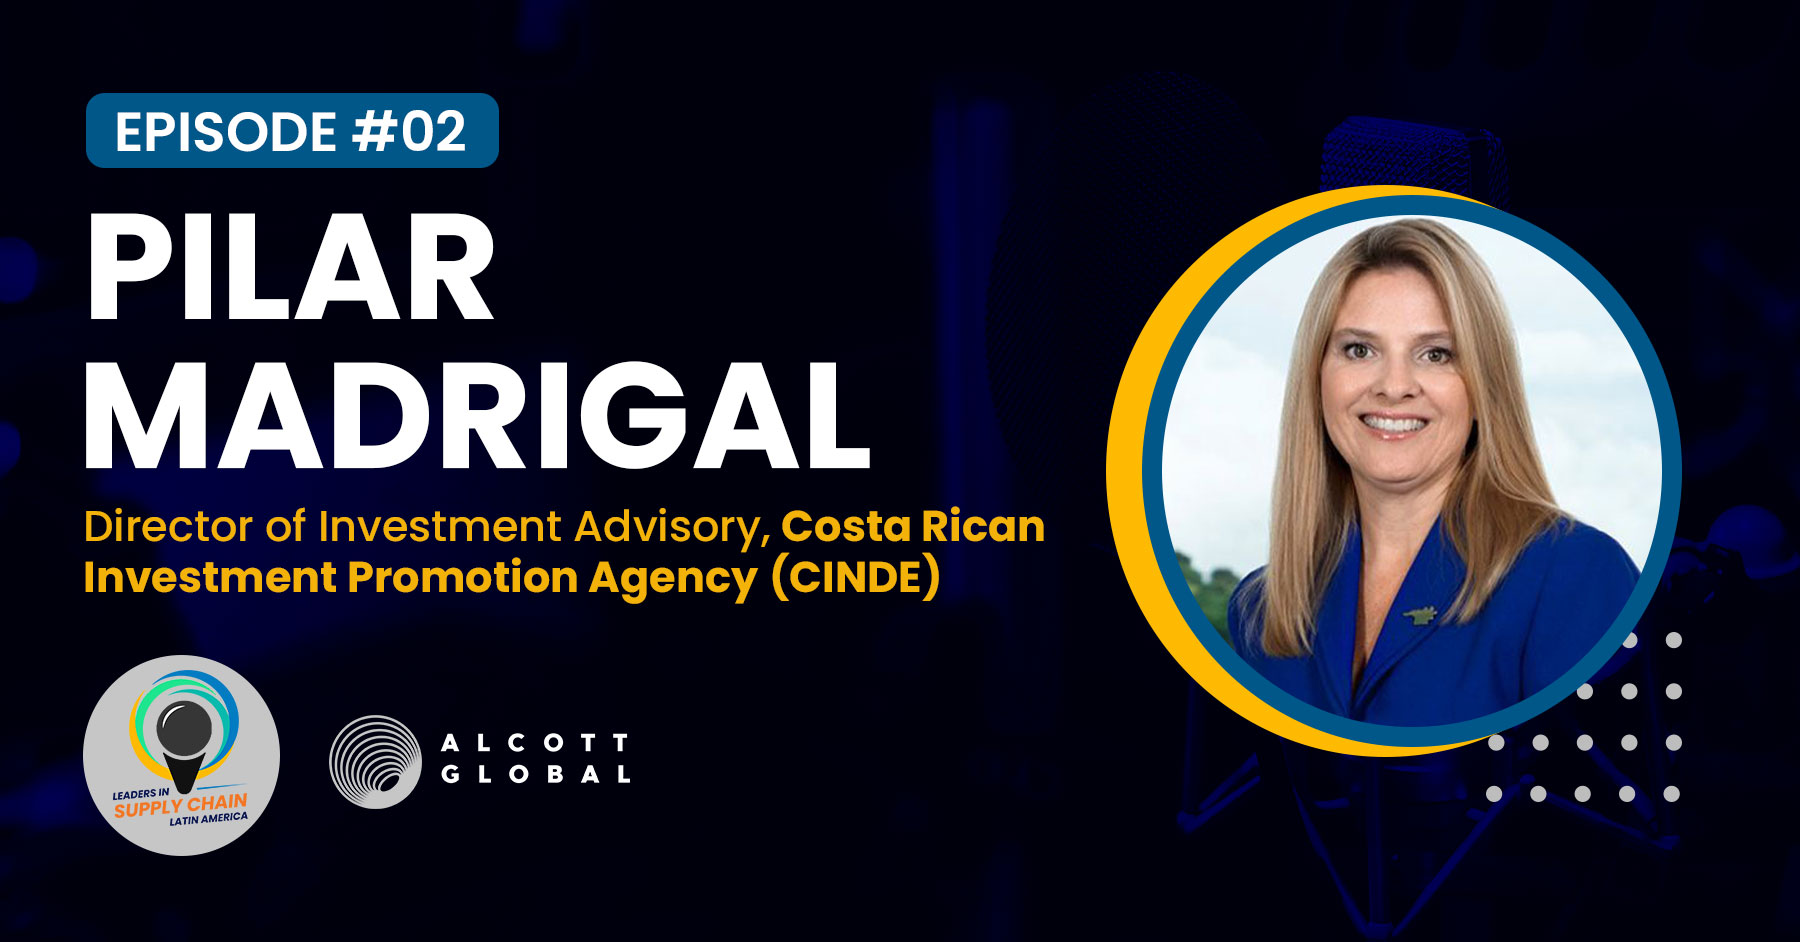 #02: Pilar Madrigal Director of Investment Advisory at Costa Rican Investment Promotion Agency (CINDE) LATAM Featured Image